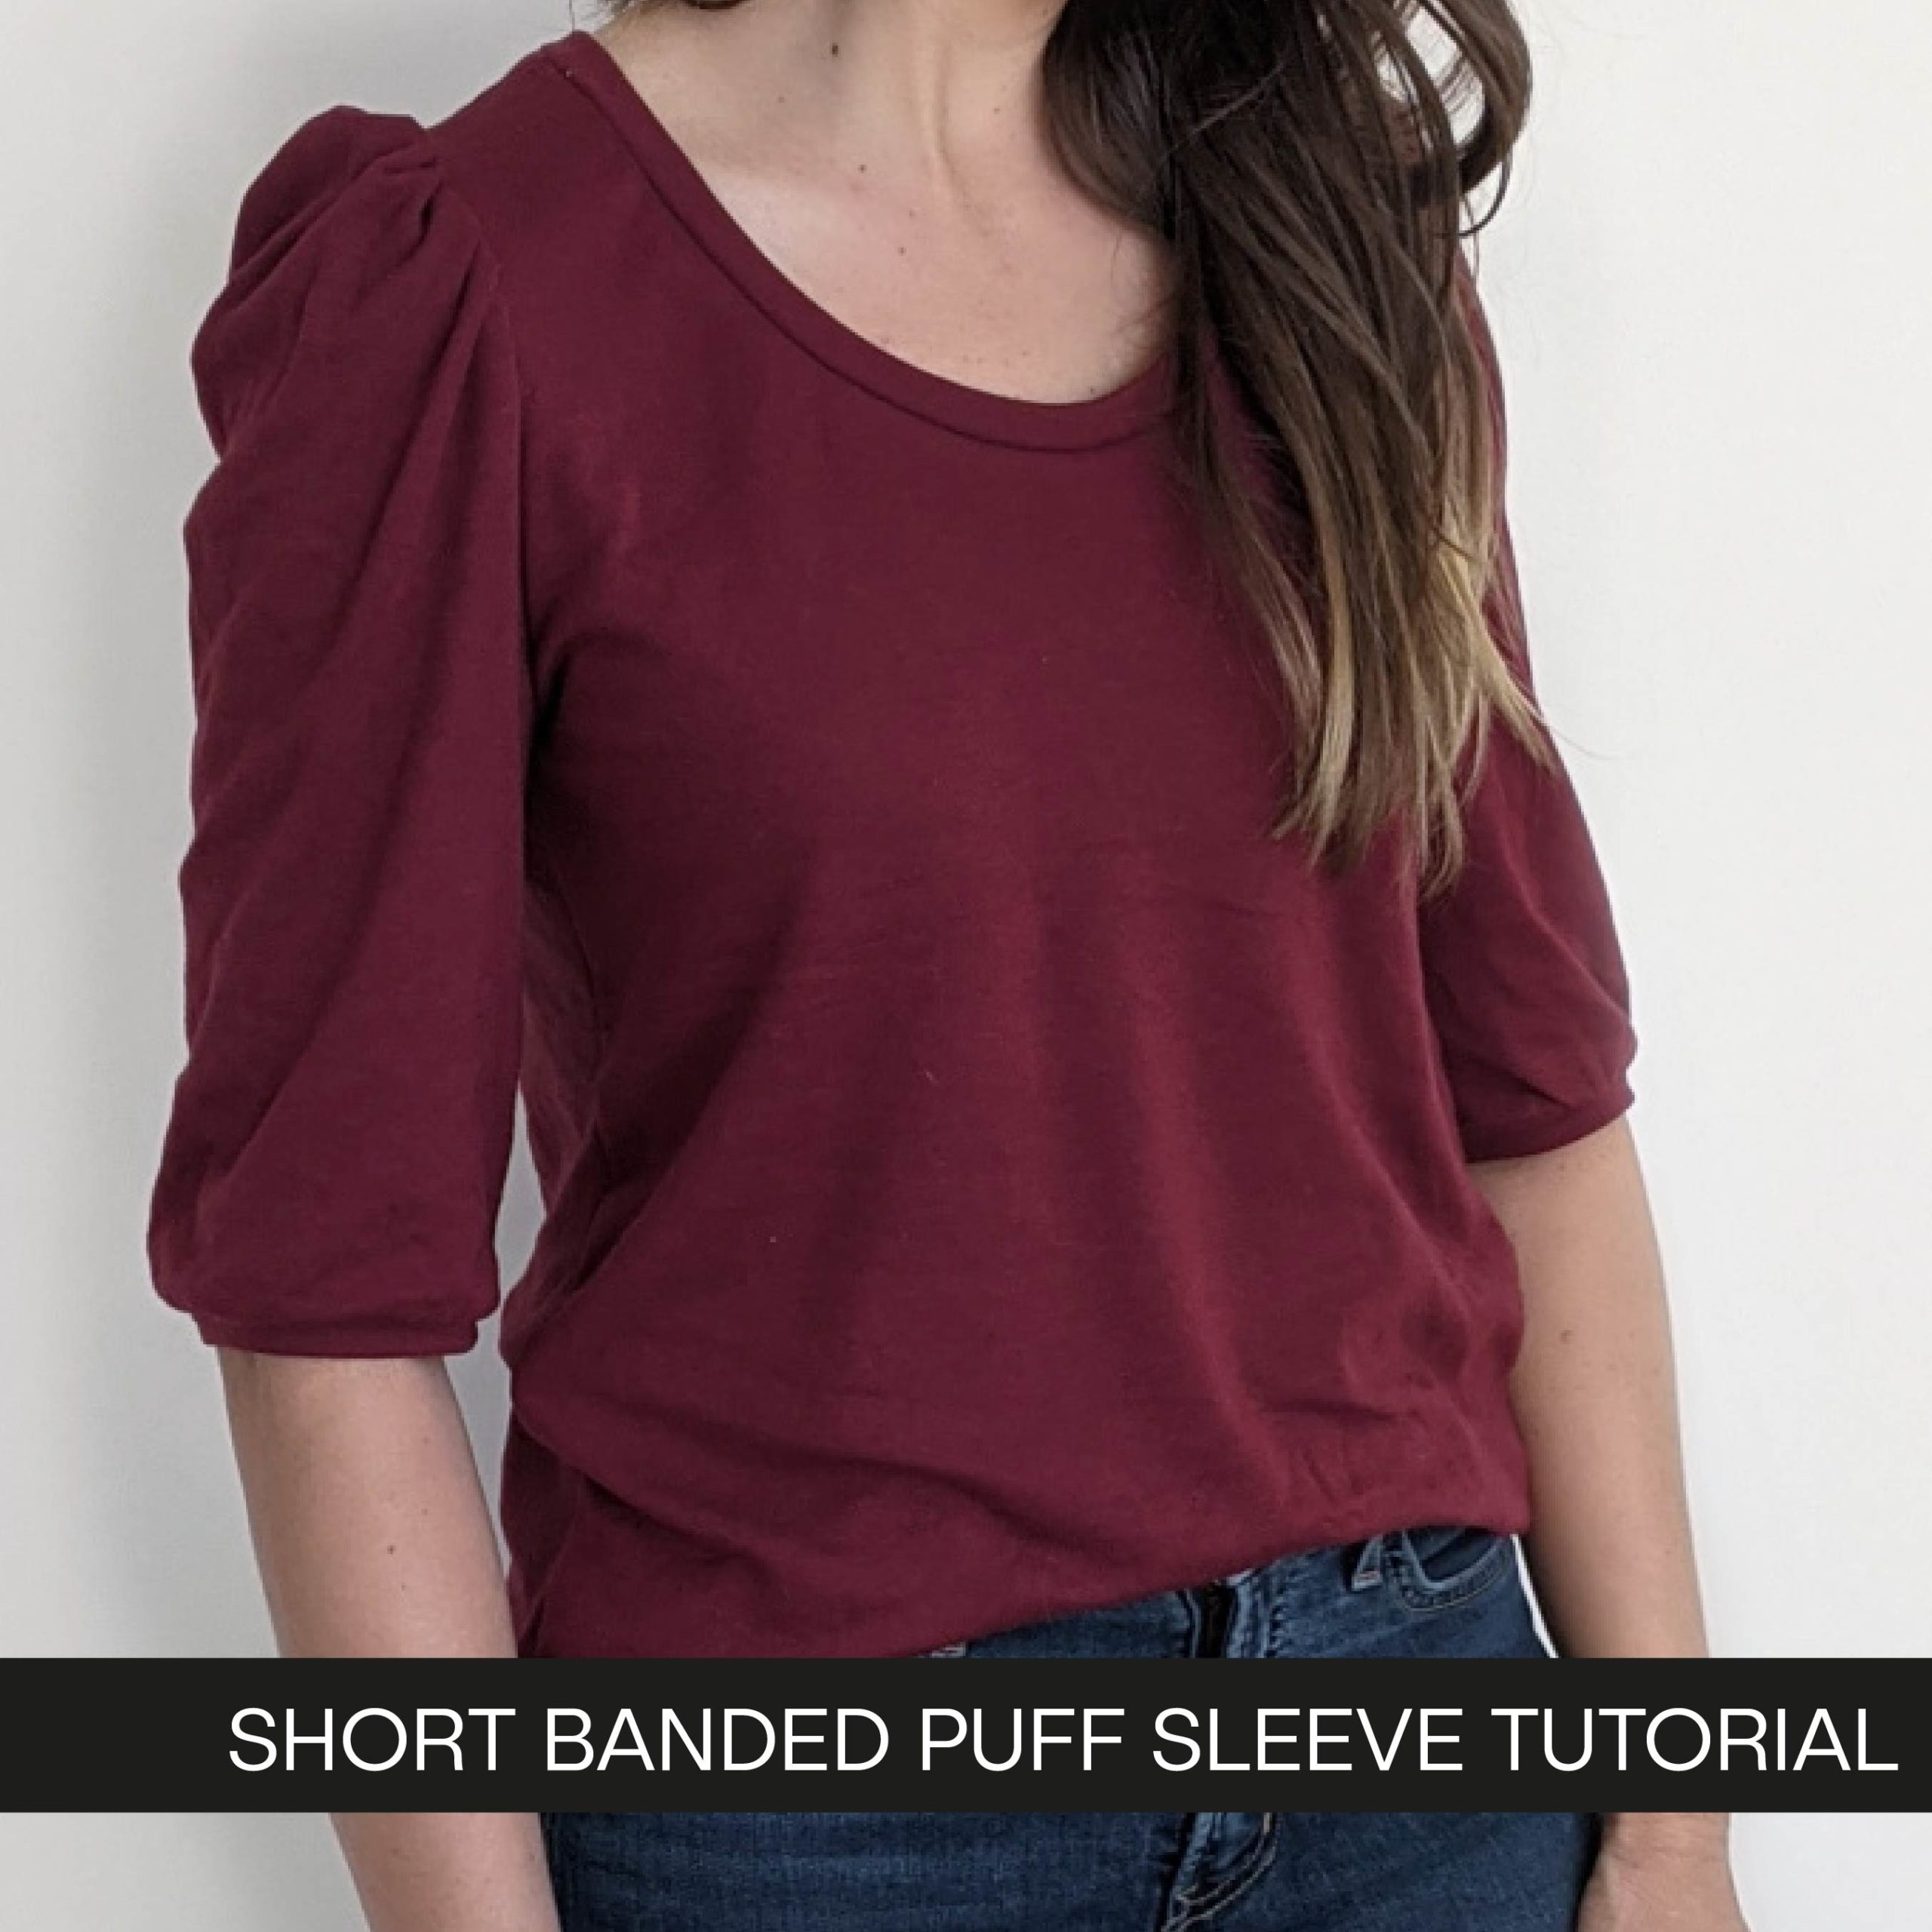 Banded Puff Sleeve Tutorial